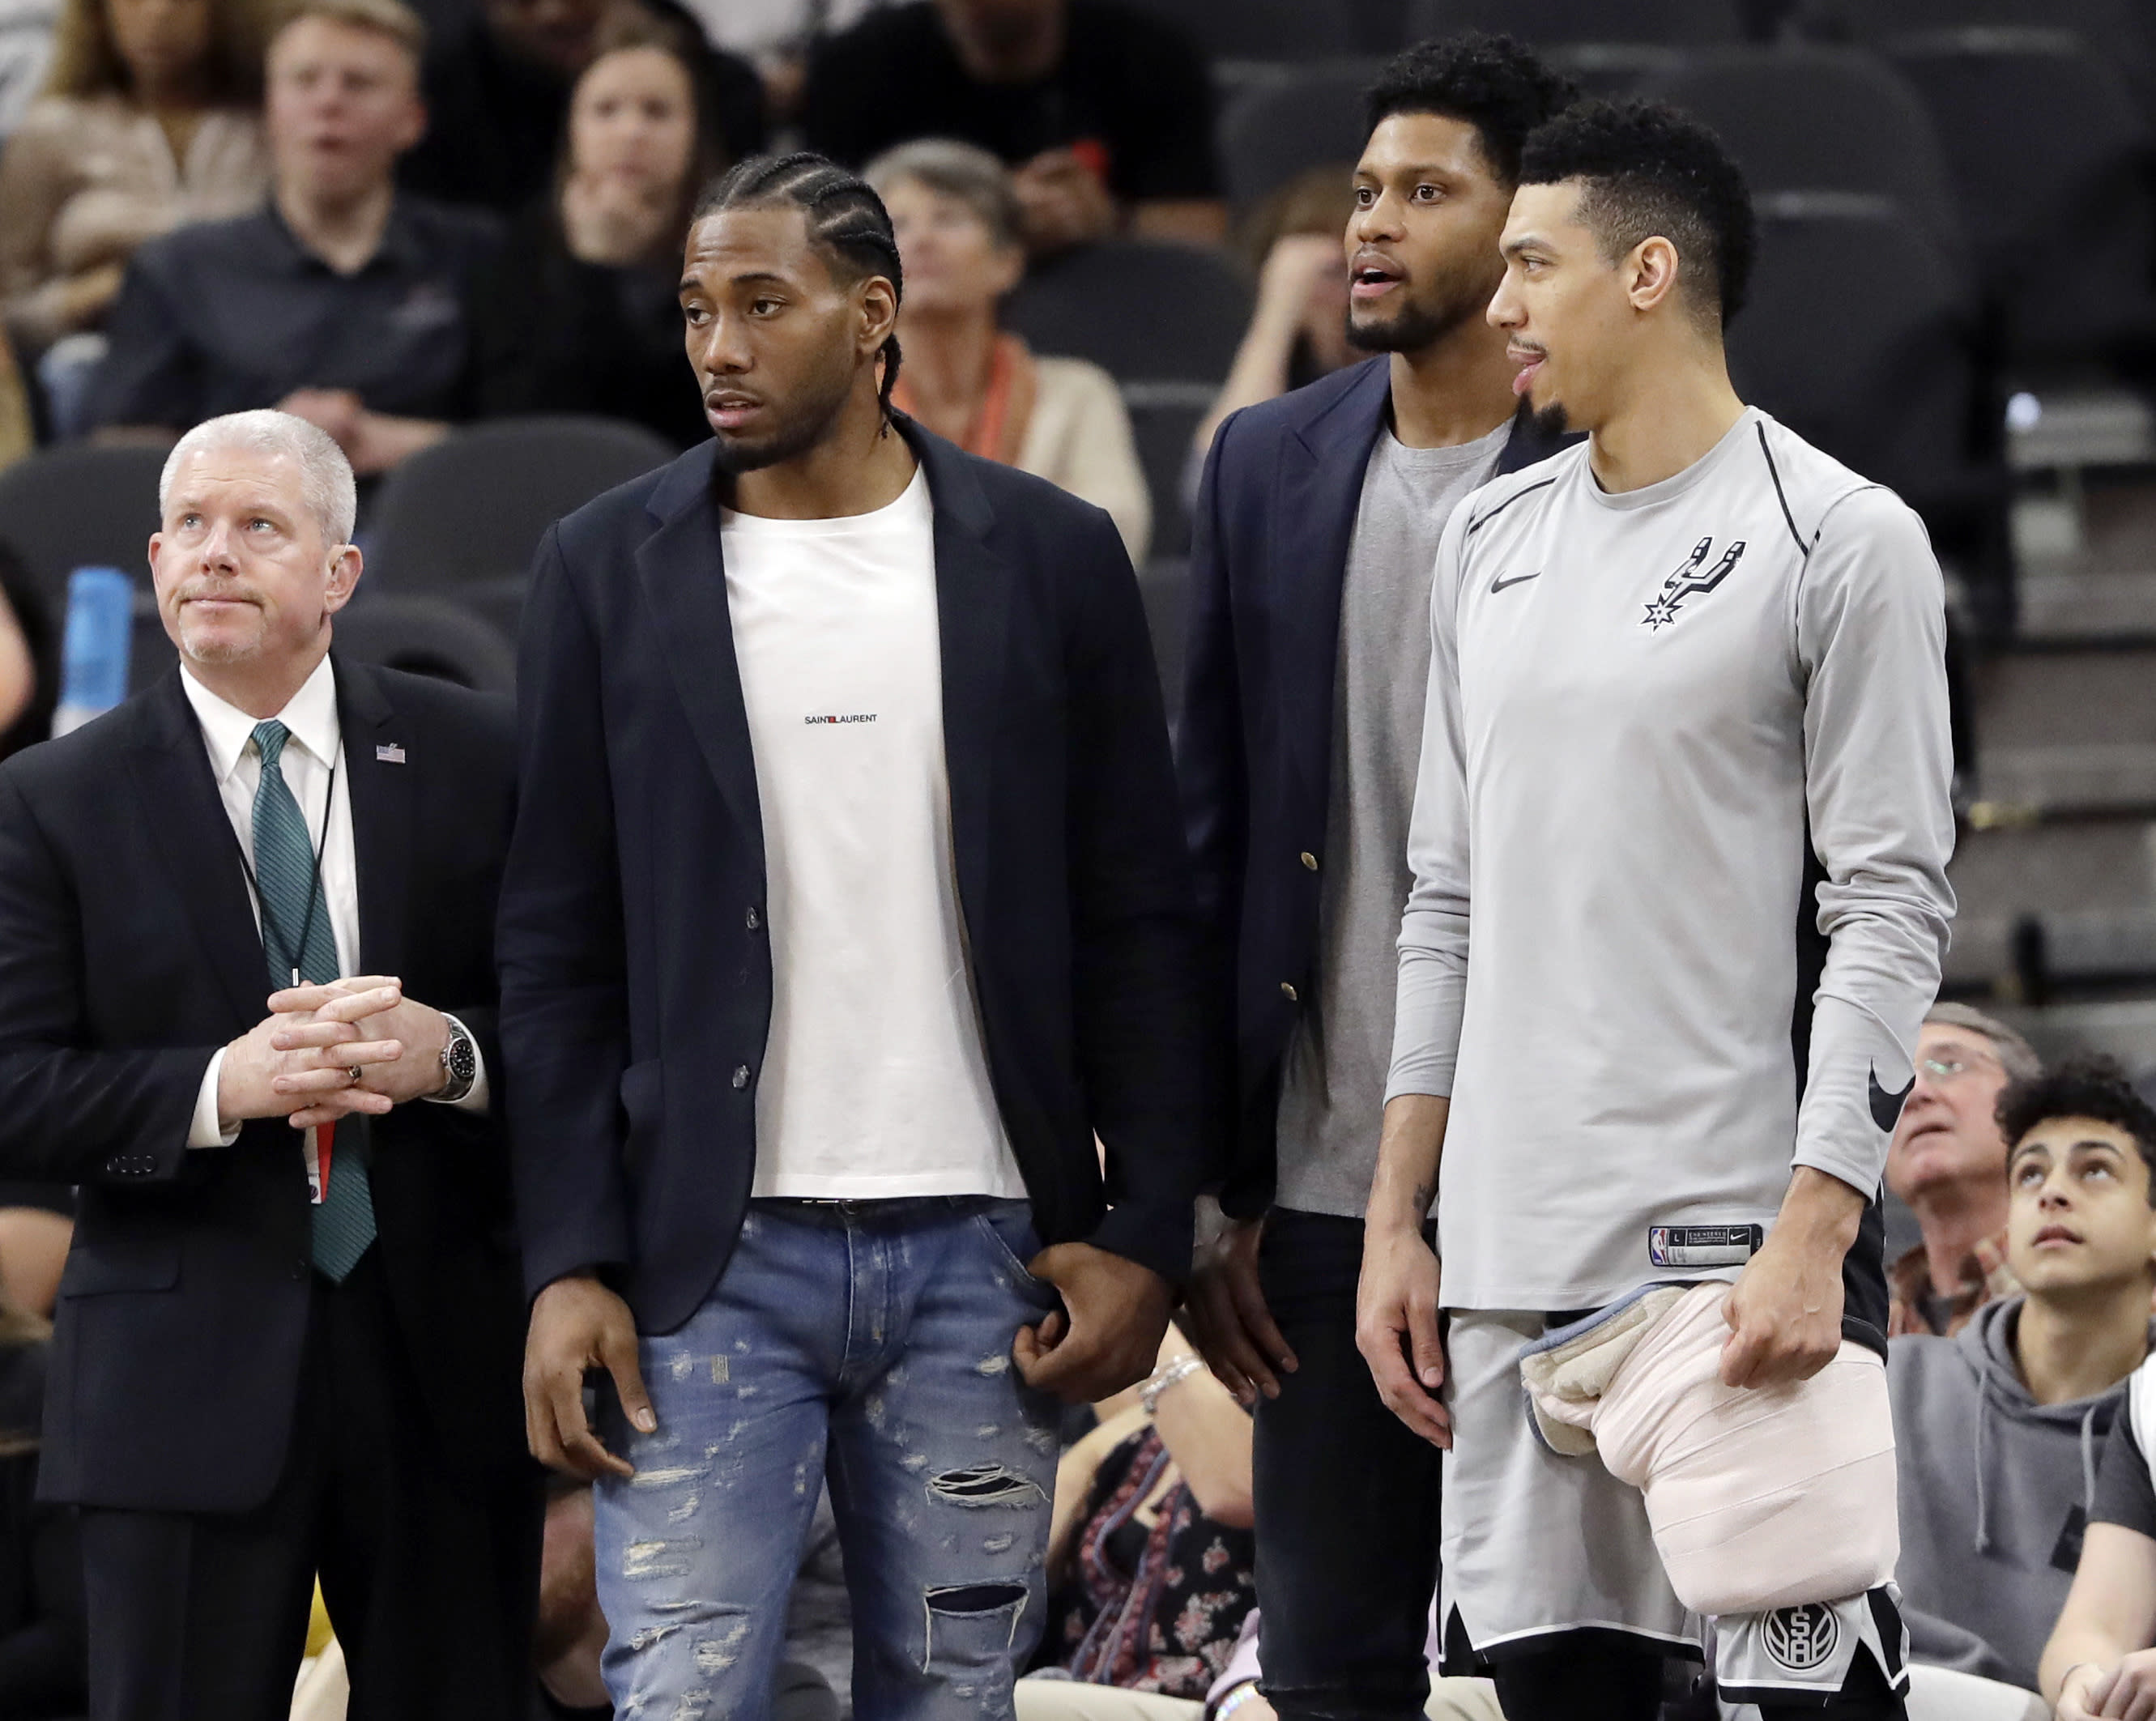 Sources: Spurs star Kawhi Leonard expected to remain out through Thursday